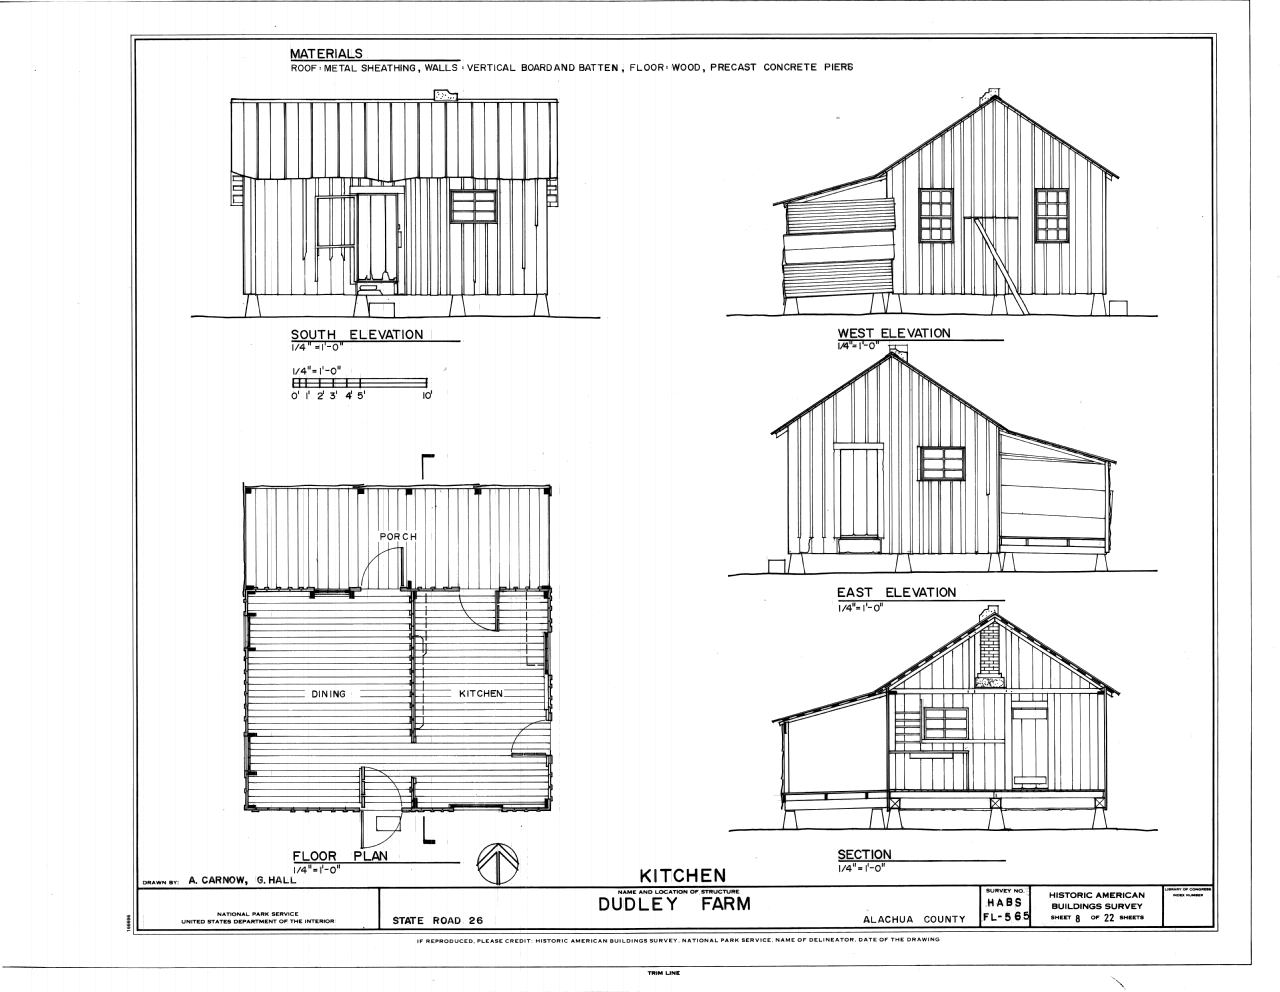 Plan Elevation End View : File kitchen elevations floor plan and section dudley